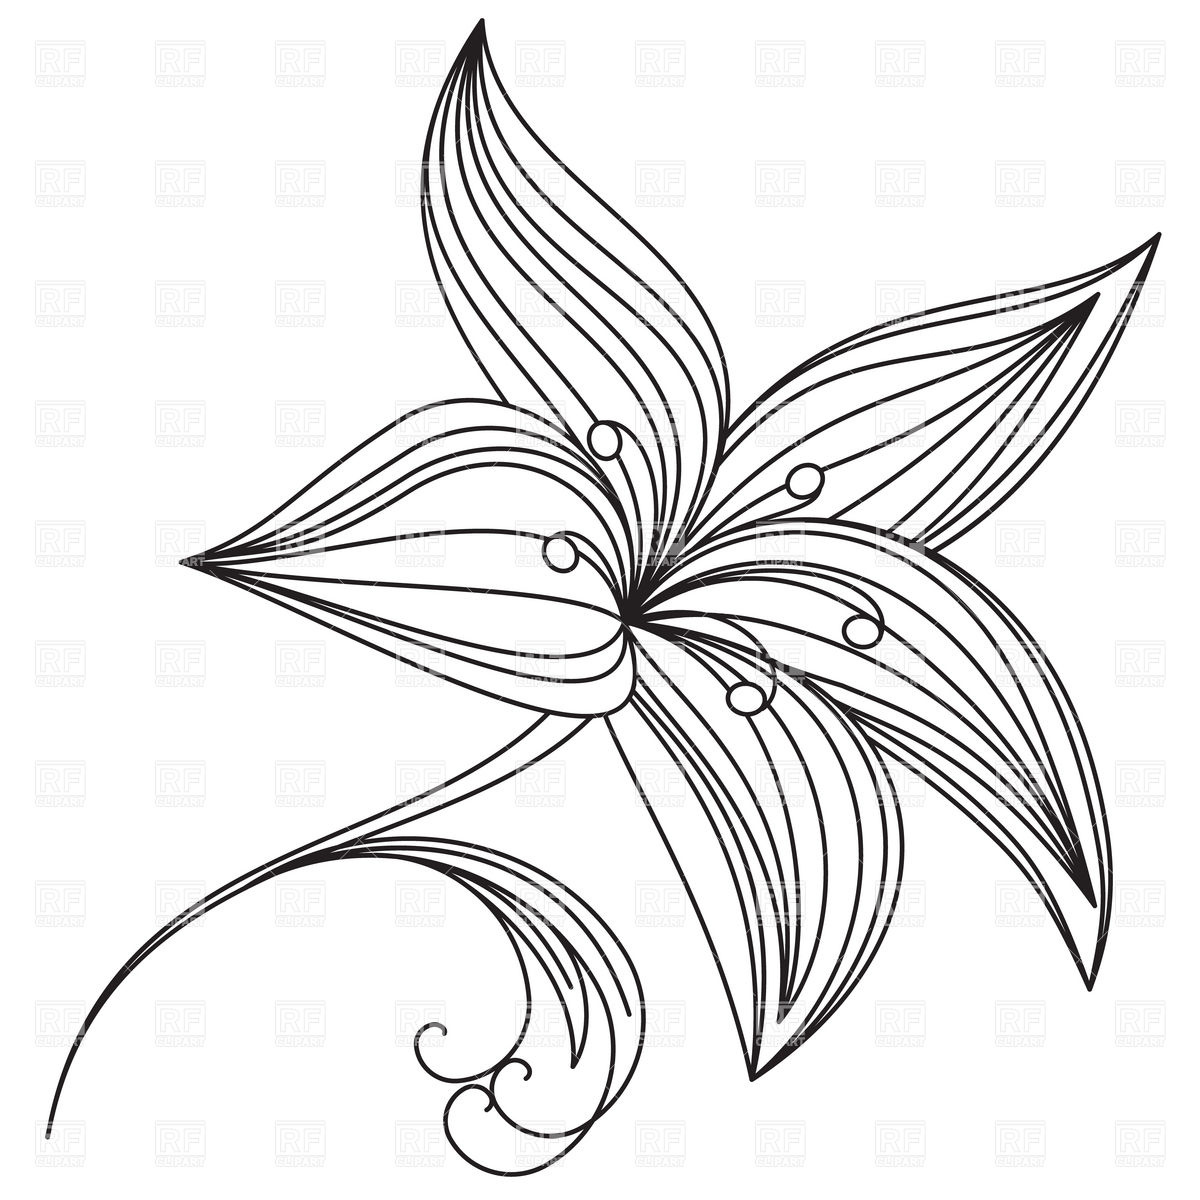 1200x1200 Eletragesi Easy Flower Drawing Outline Images